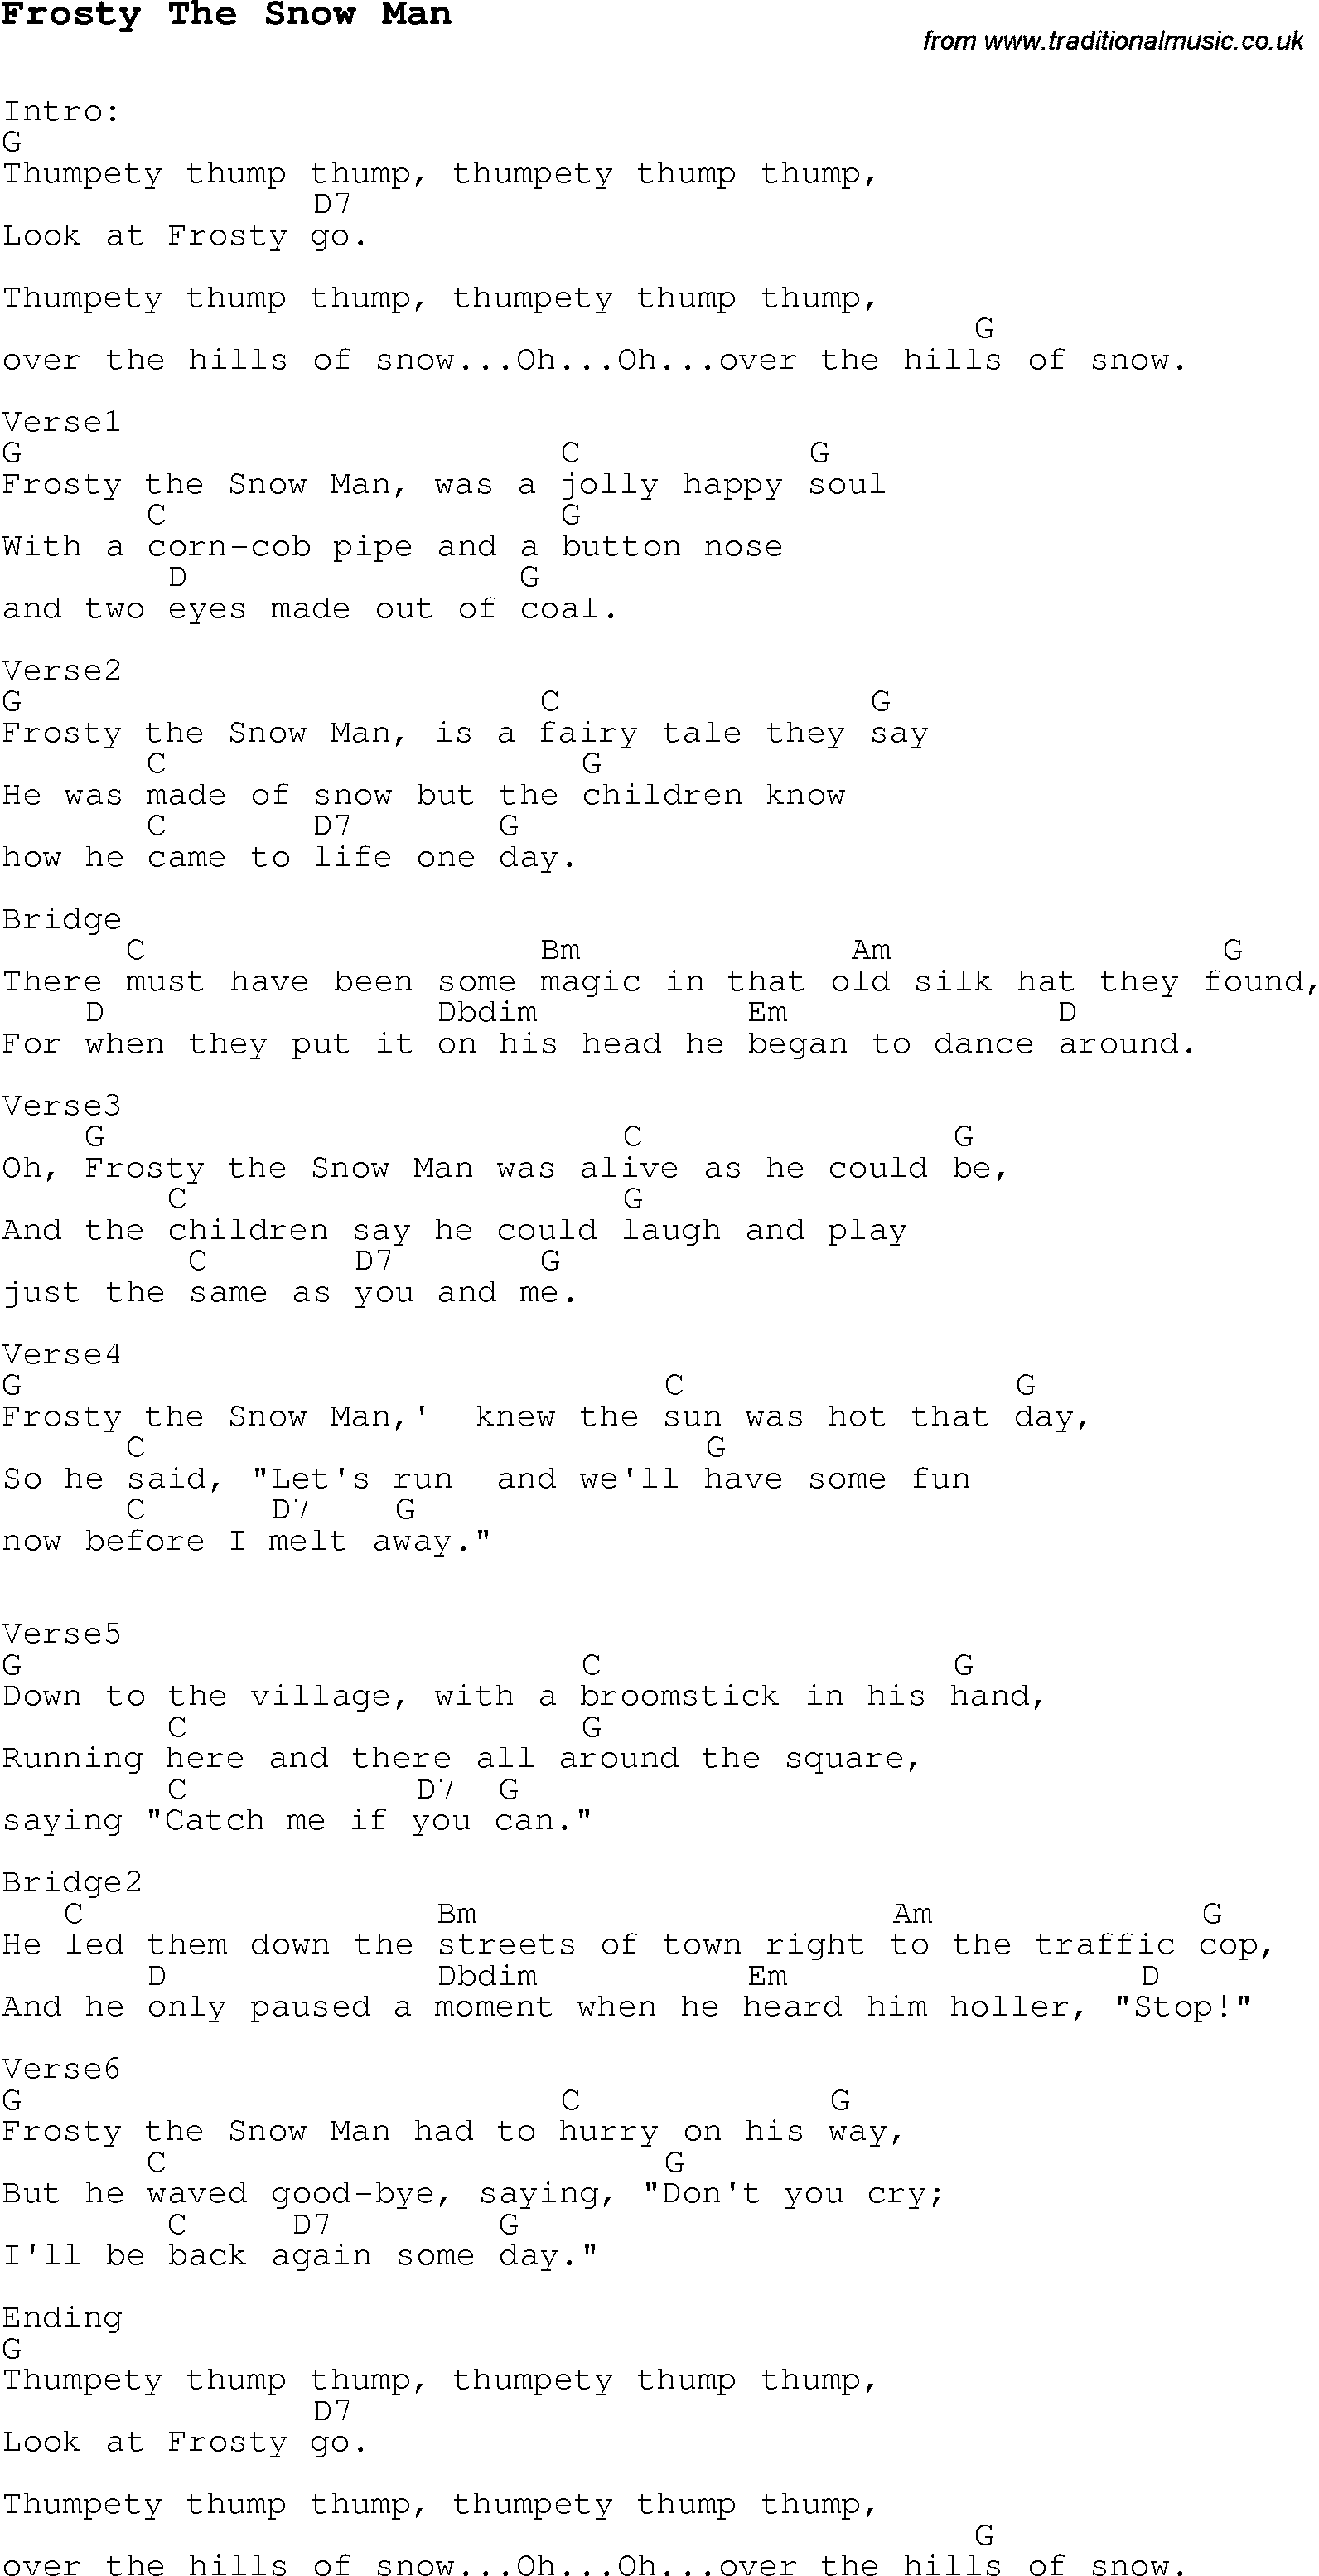 Christmas Carol/Song lyrics with chords for Frosty The Snow Man